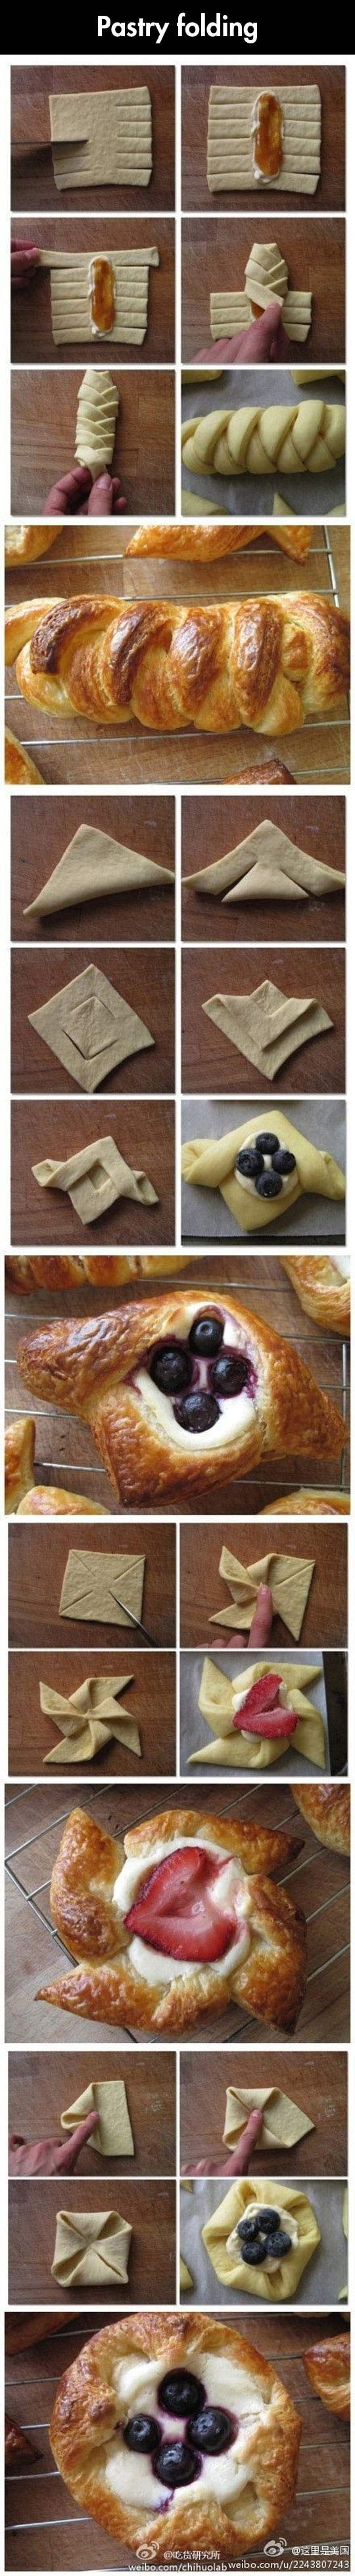 Puff Pastry Folding Hacks | Community Post: 40 Creative Food Hacks That